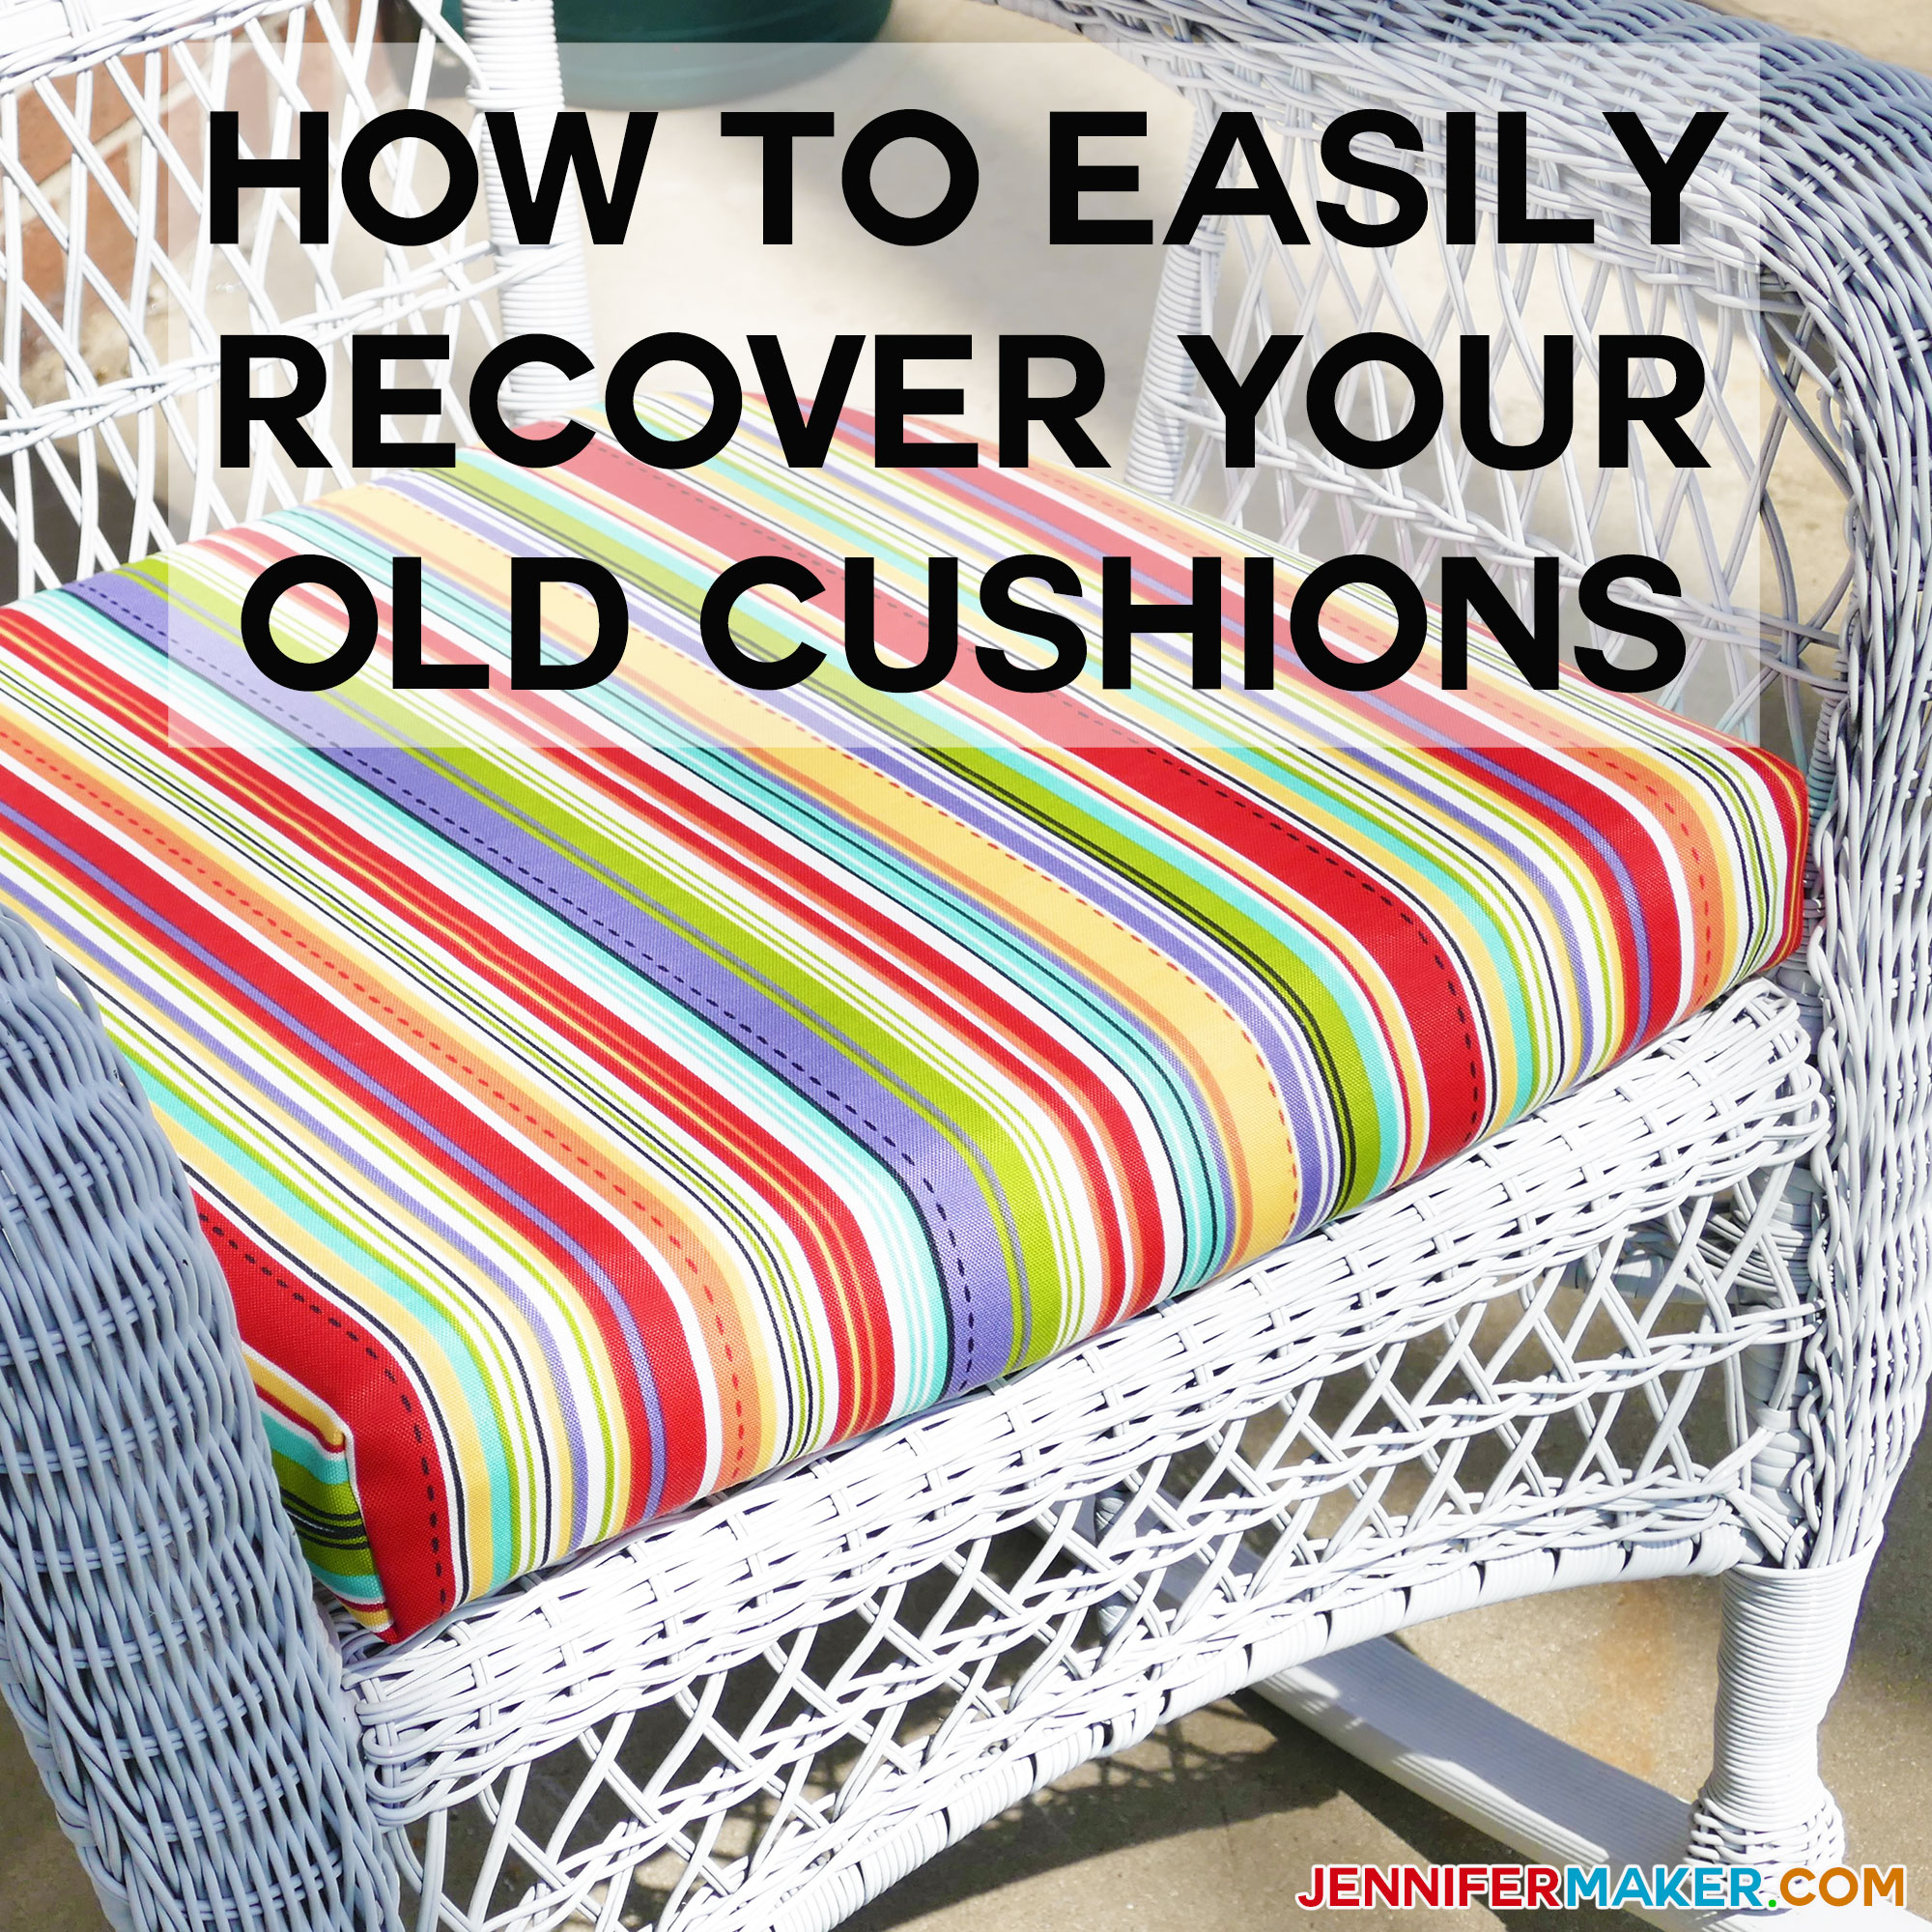 diy wicker chair cushions antique rocking with leather seat how to recover your outdoor quick and easy